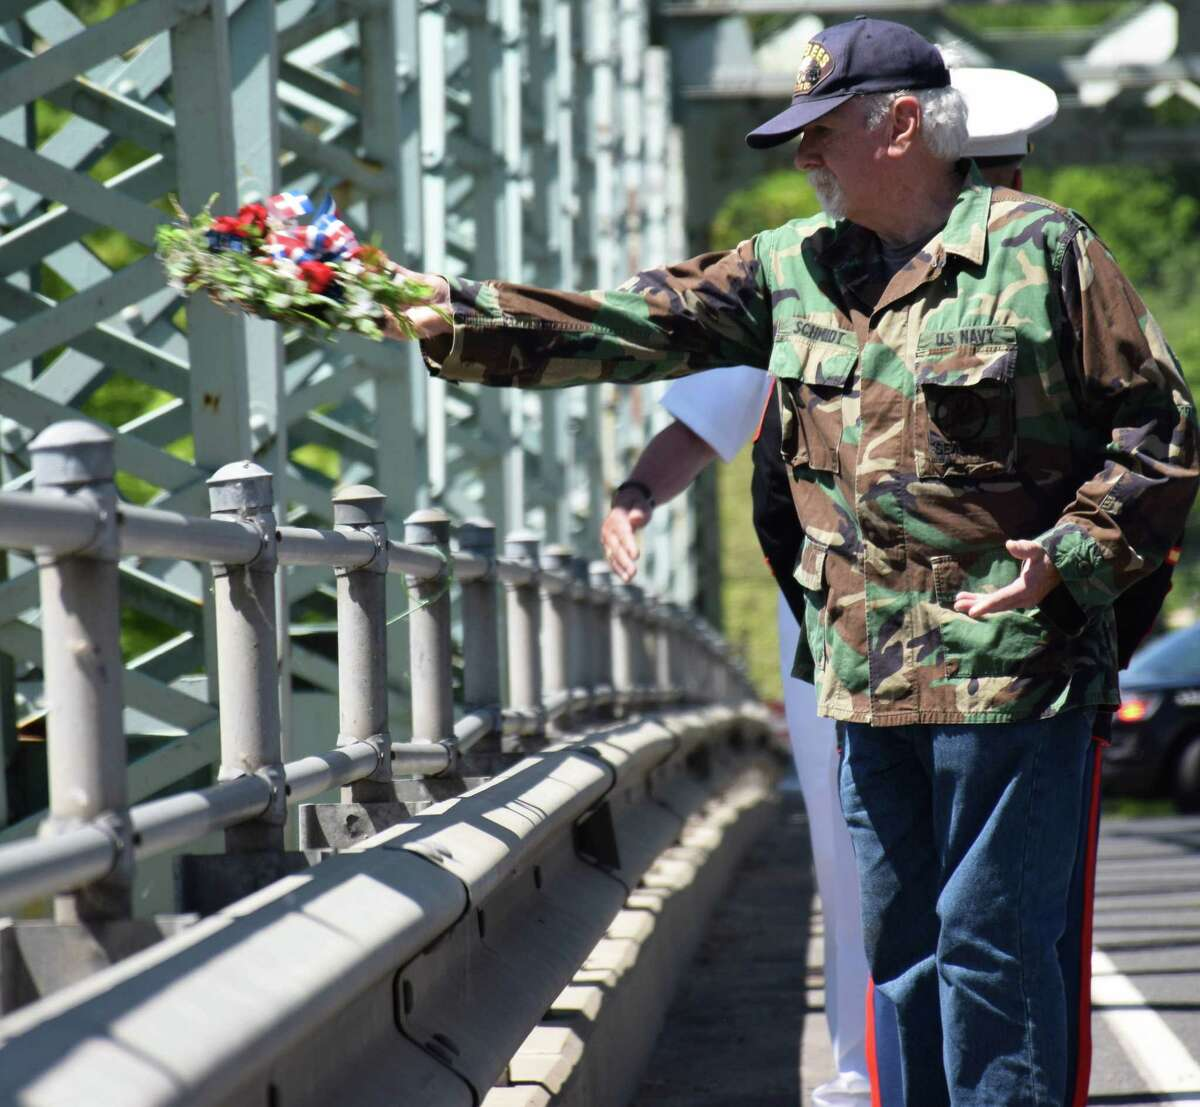 Spectrum/New Milford recognized Memorial Day with a ceremony in front of the New Milford Public Library, followed by a parade downtown. May 27, 2019. Above, Chief Petty Officer Martin Schmidt tosses the mariner's wreath from Veterans Memorial Bridge into the Housatonic River.